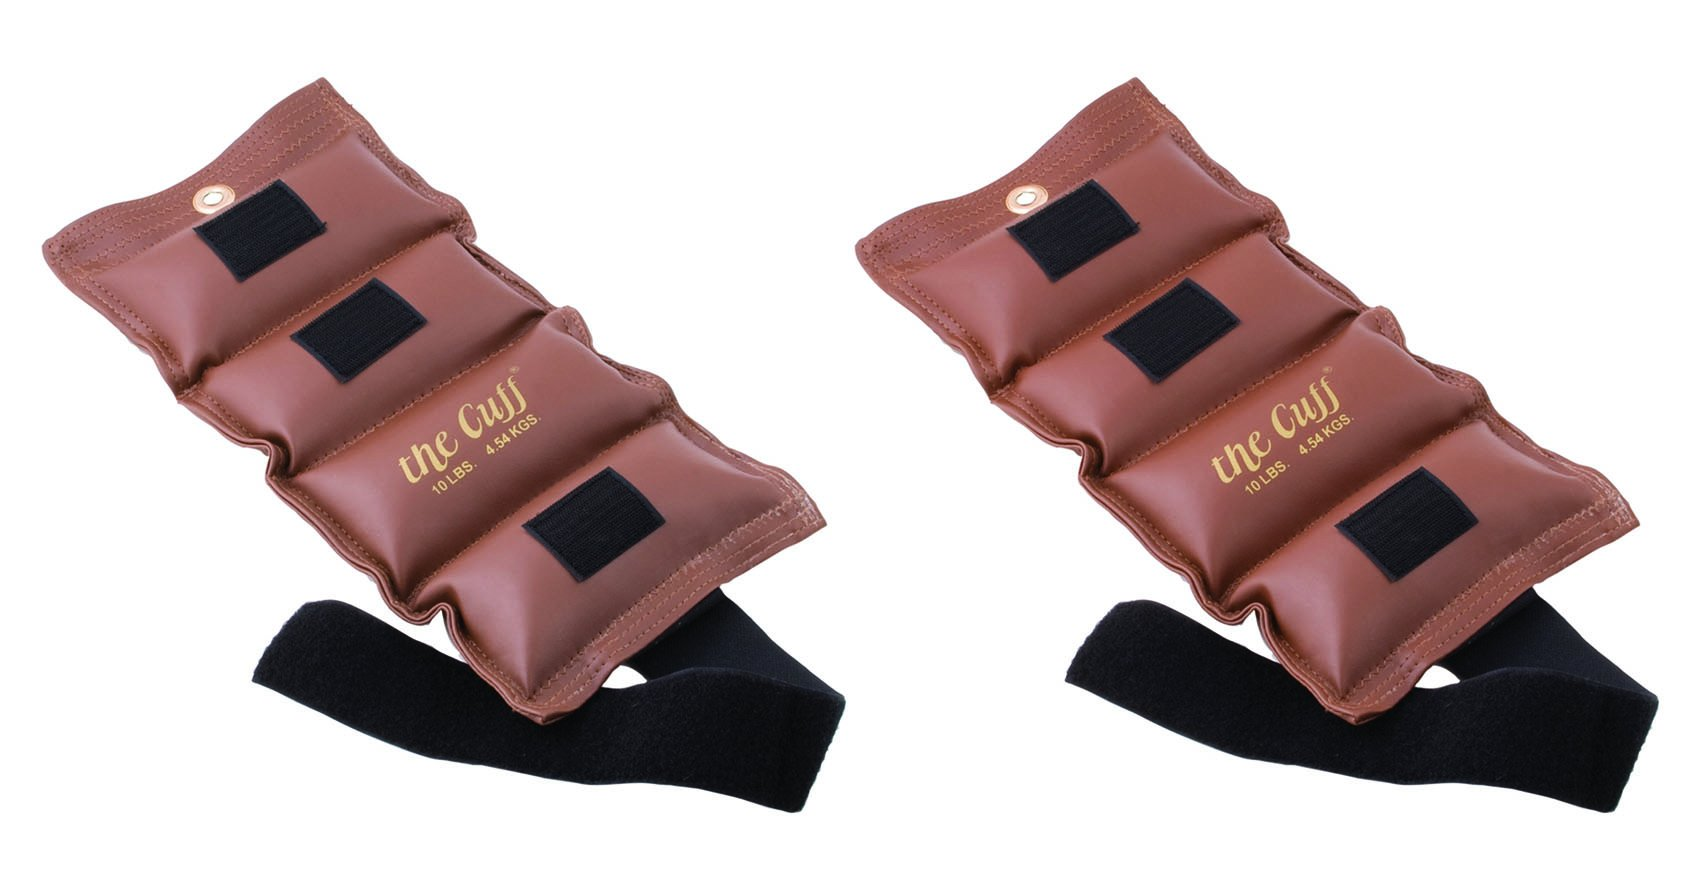 The Cuff Original Ankle and Wrist Weight - 10 pound, Brown - Set of 2